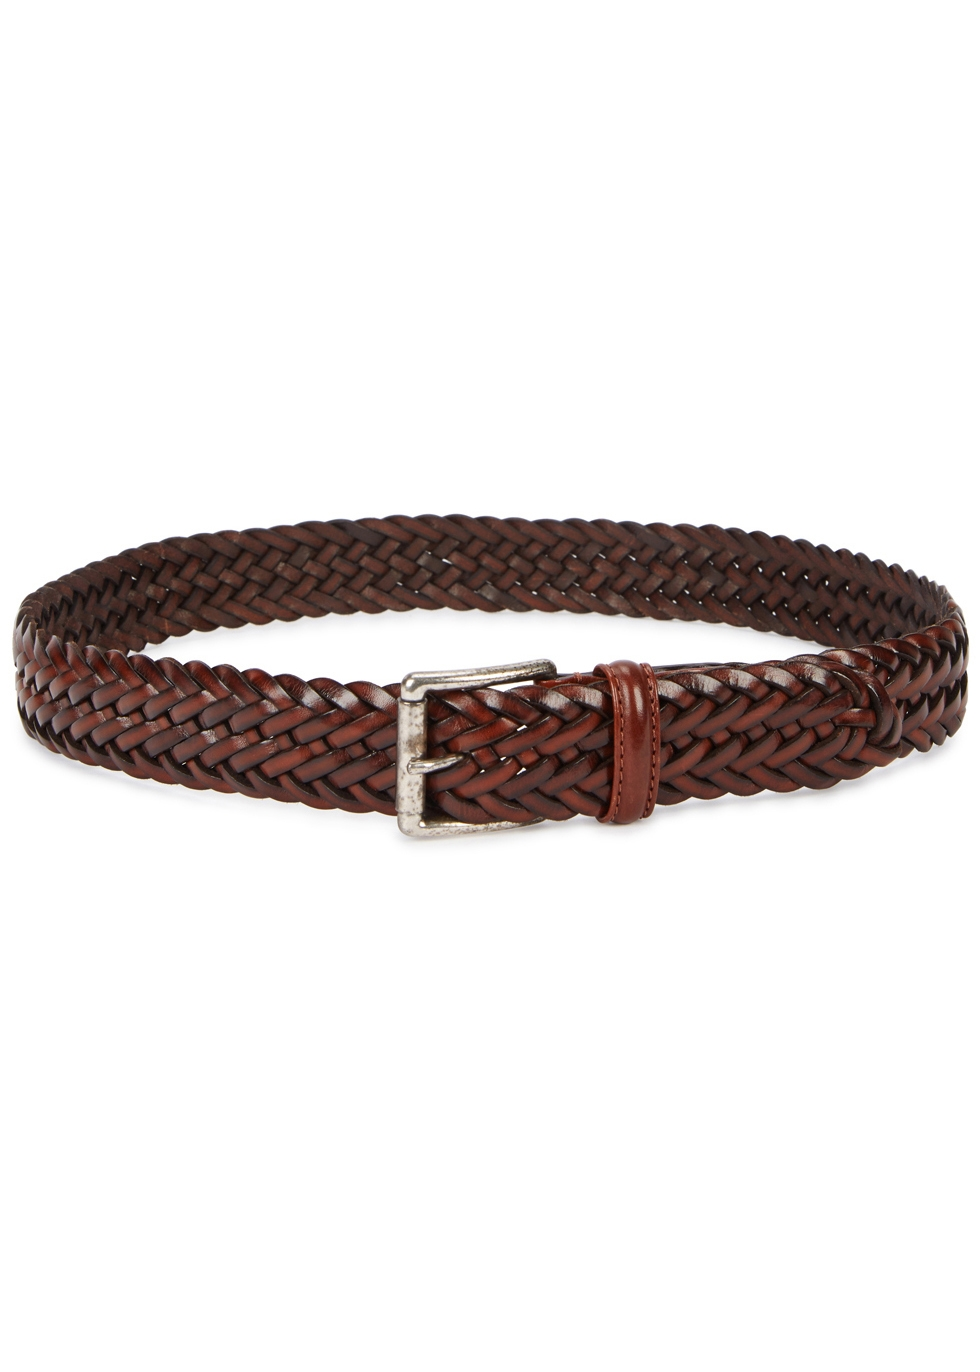 Brown woven leather belt - Anderson's